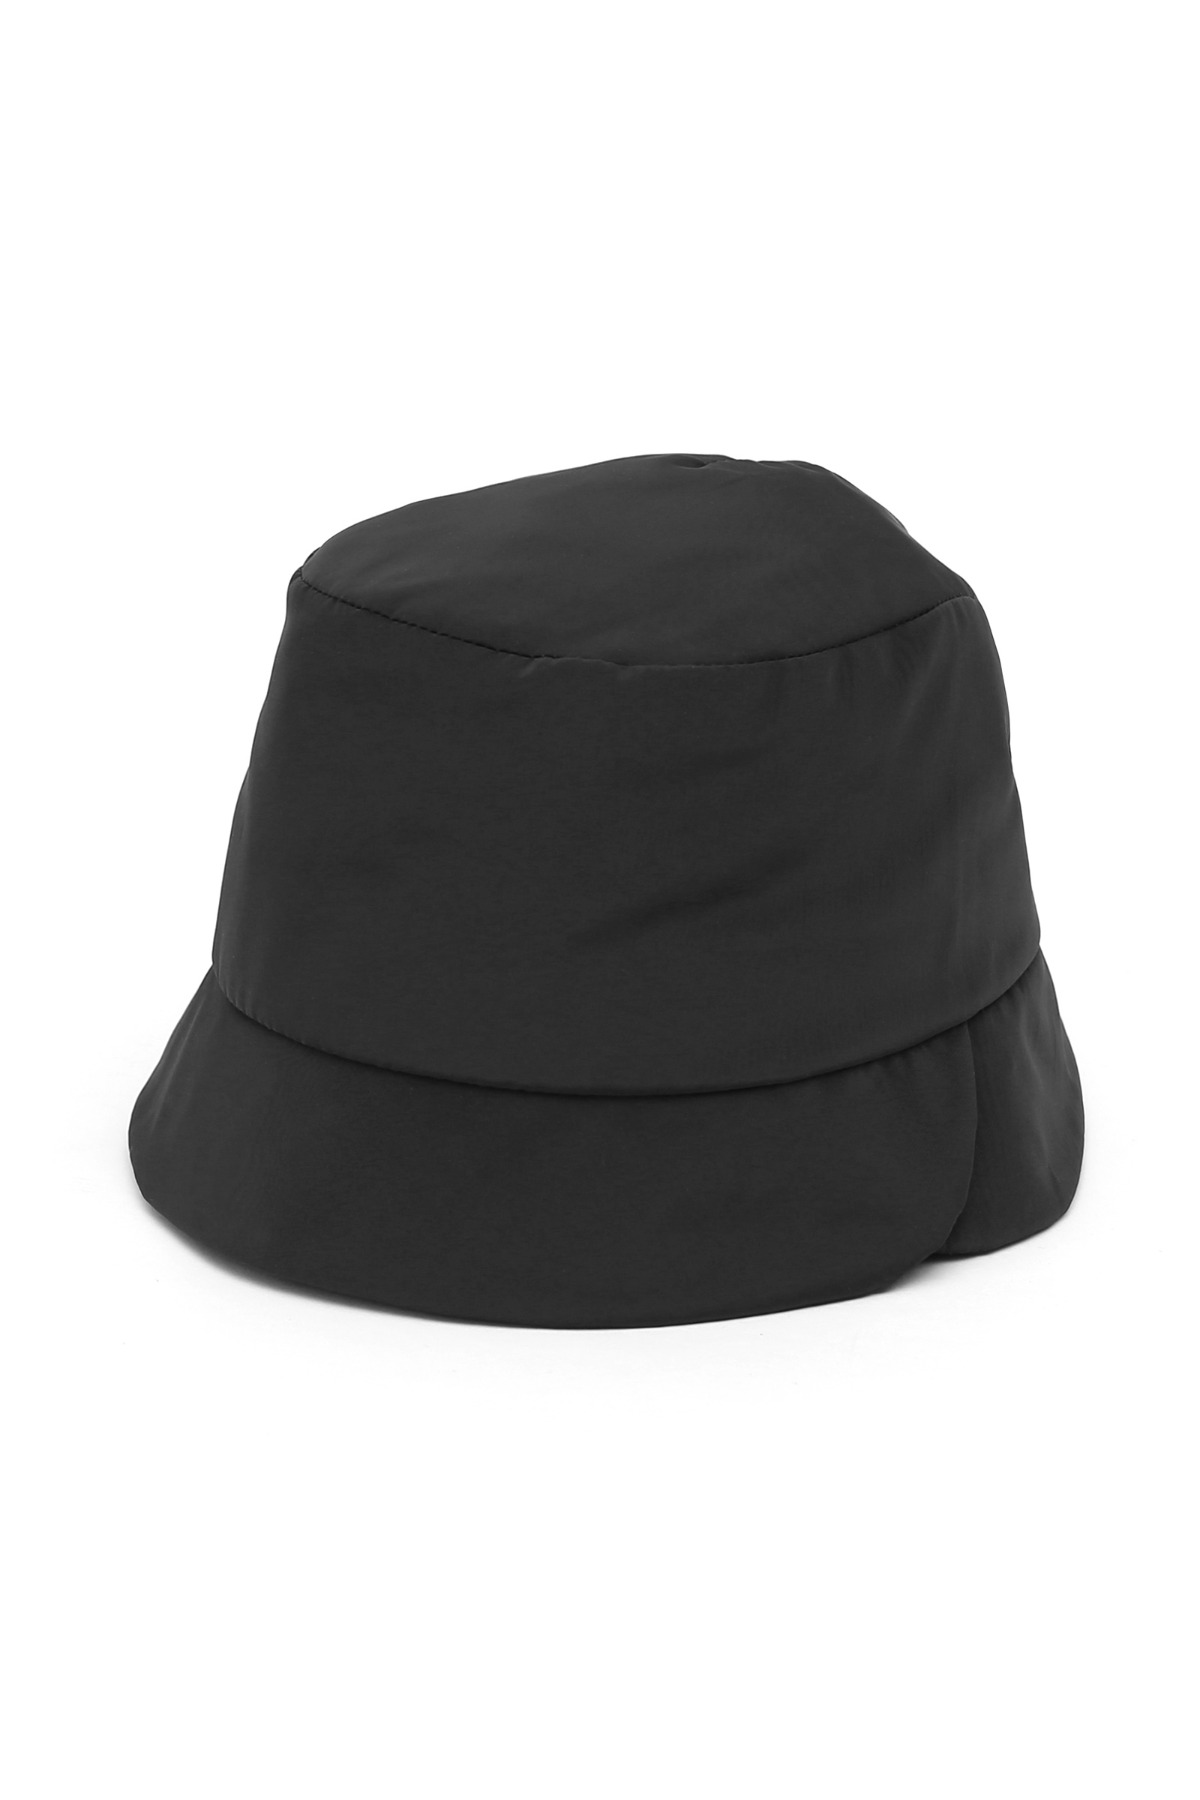 TULIP BUCKET / MEMORY / BLACK